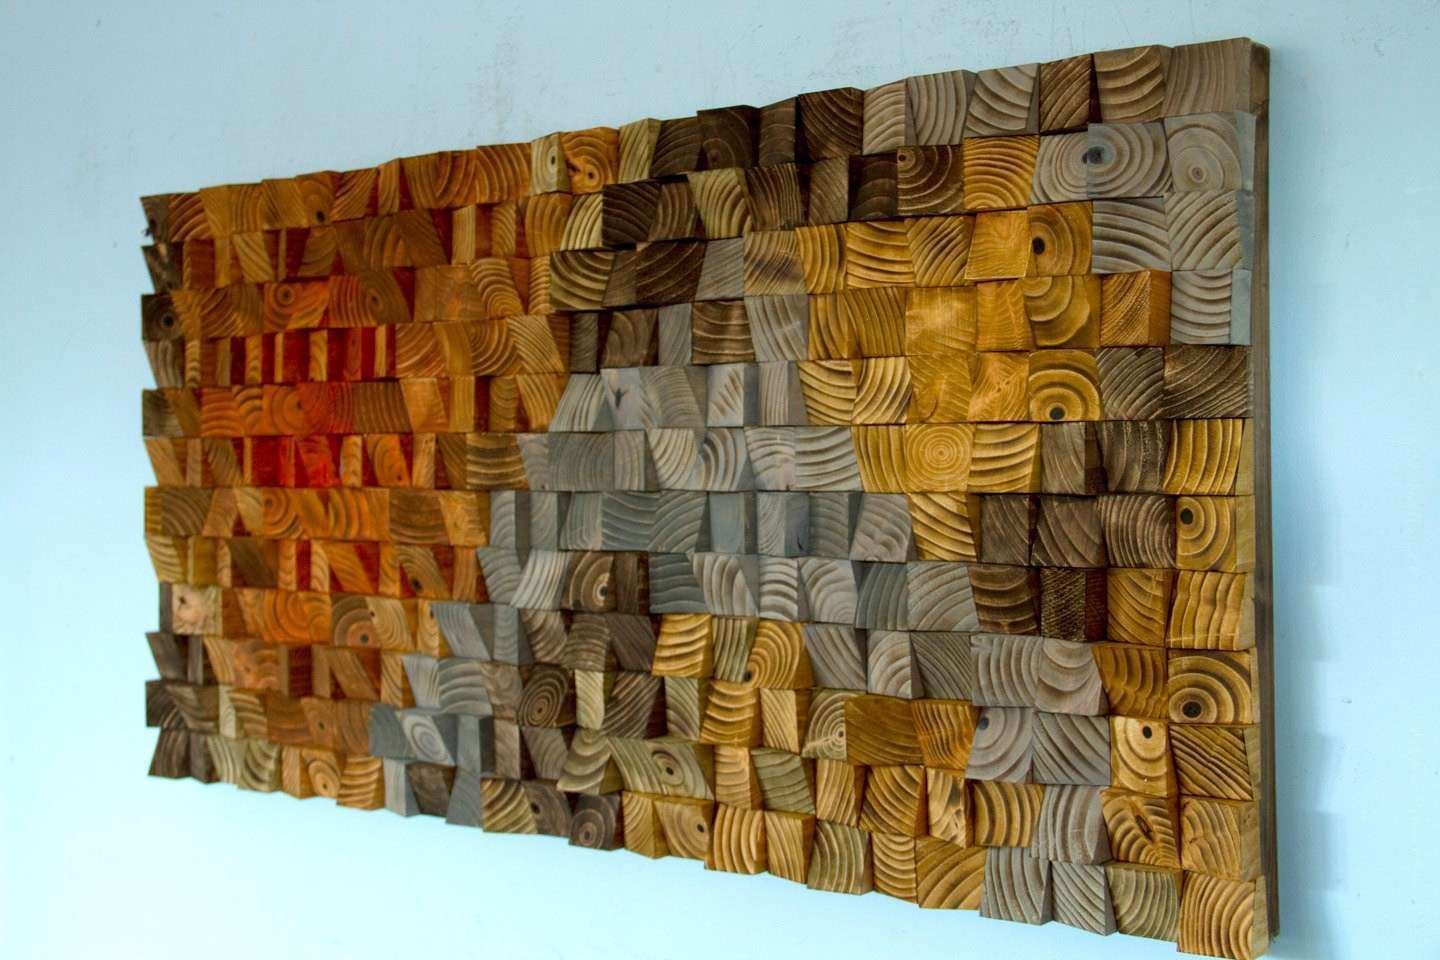 Rustic Art wood wall sculpture abstract painting